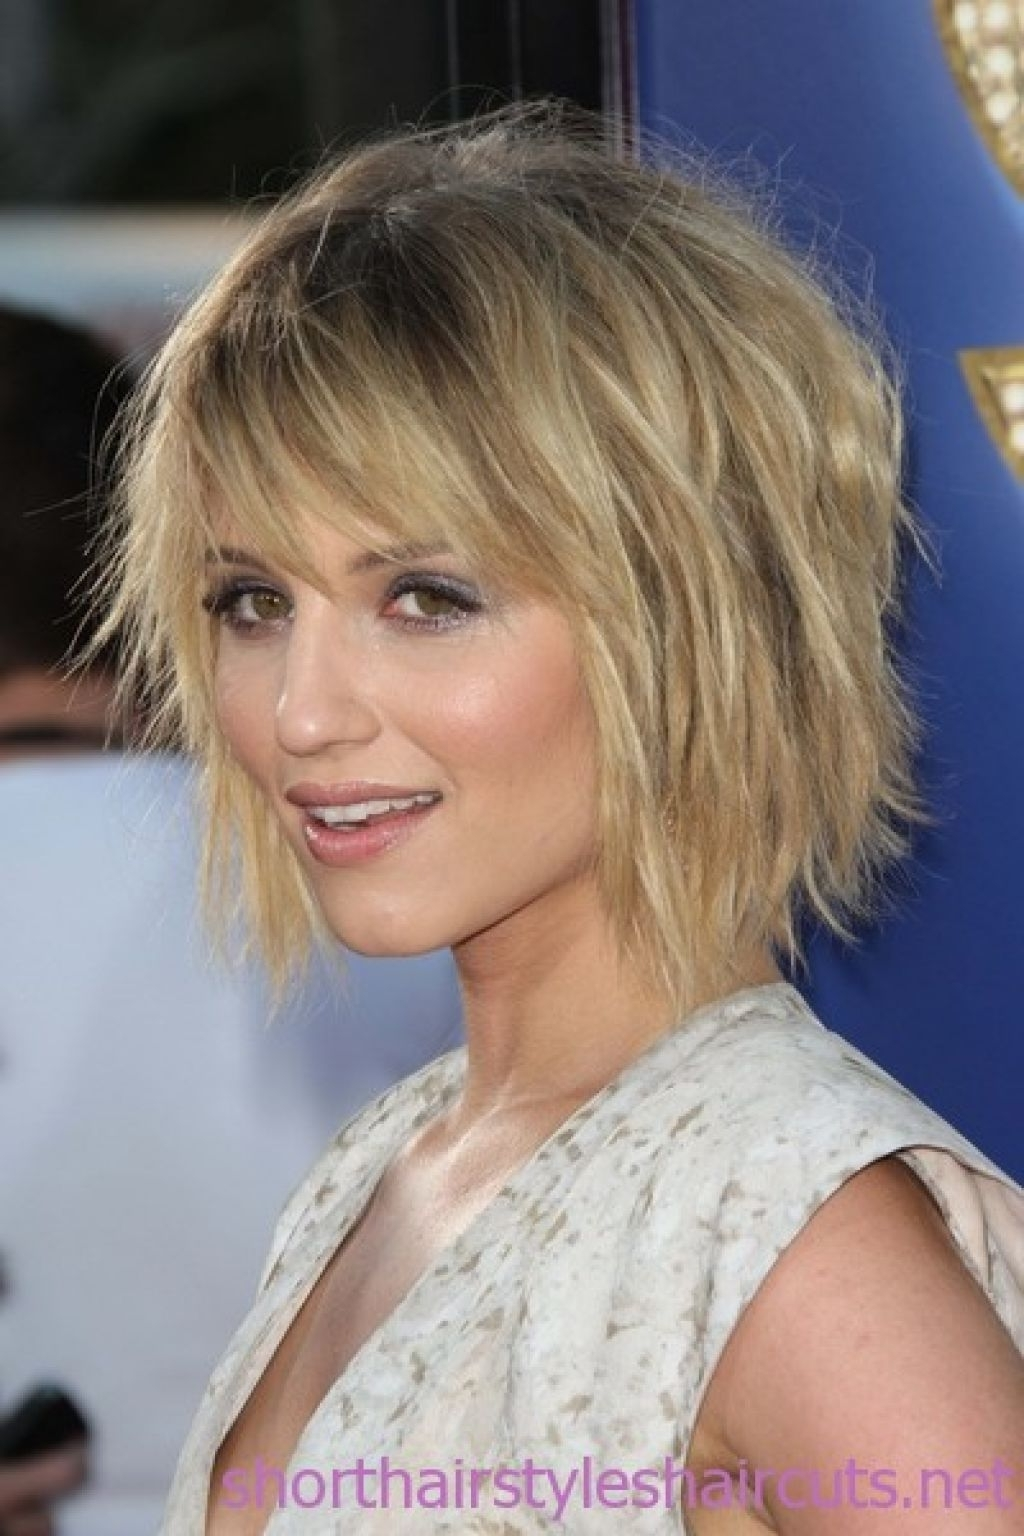 Latest Shaggy Bob Hairstyles With Fringe With Short Choppy Layered Hairstyles For Fine Hair – 2015 Hairstyles (View 7 of 15)